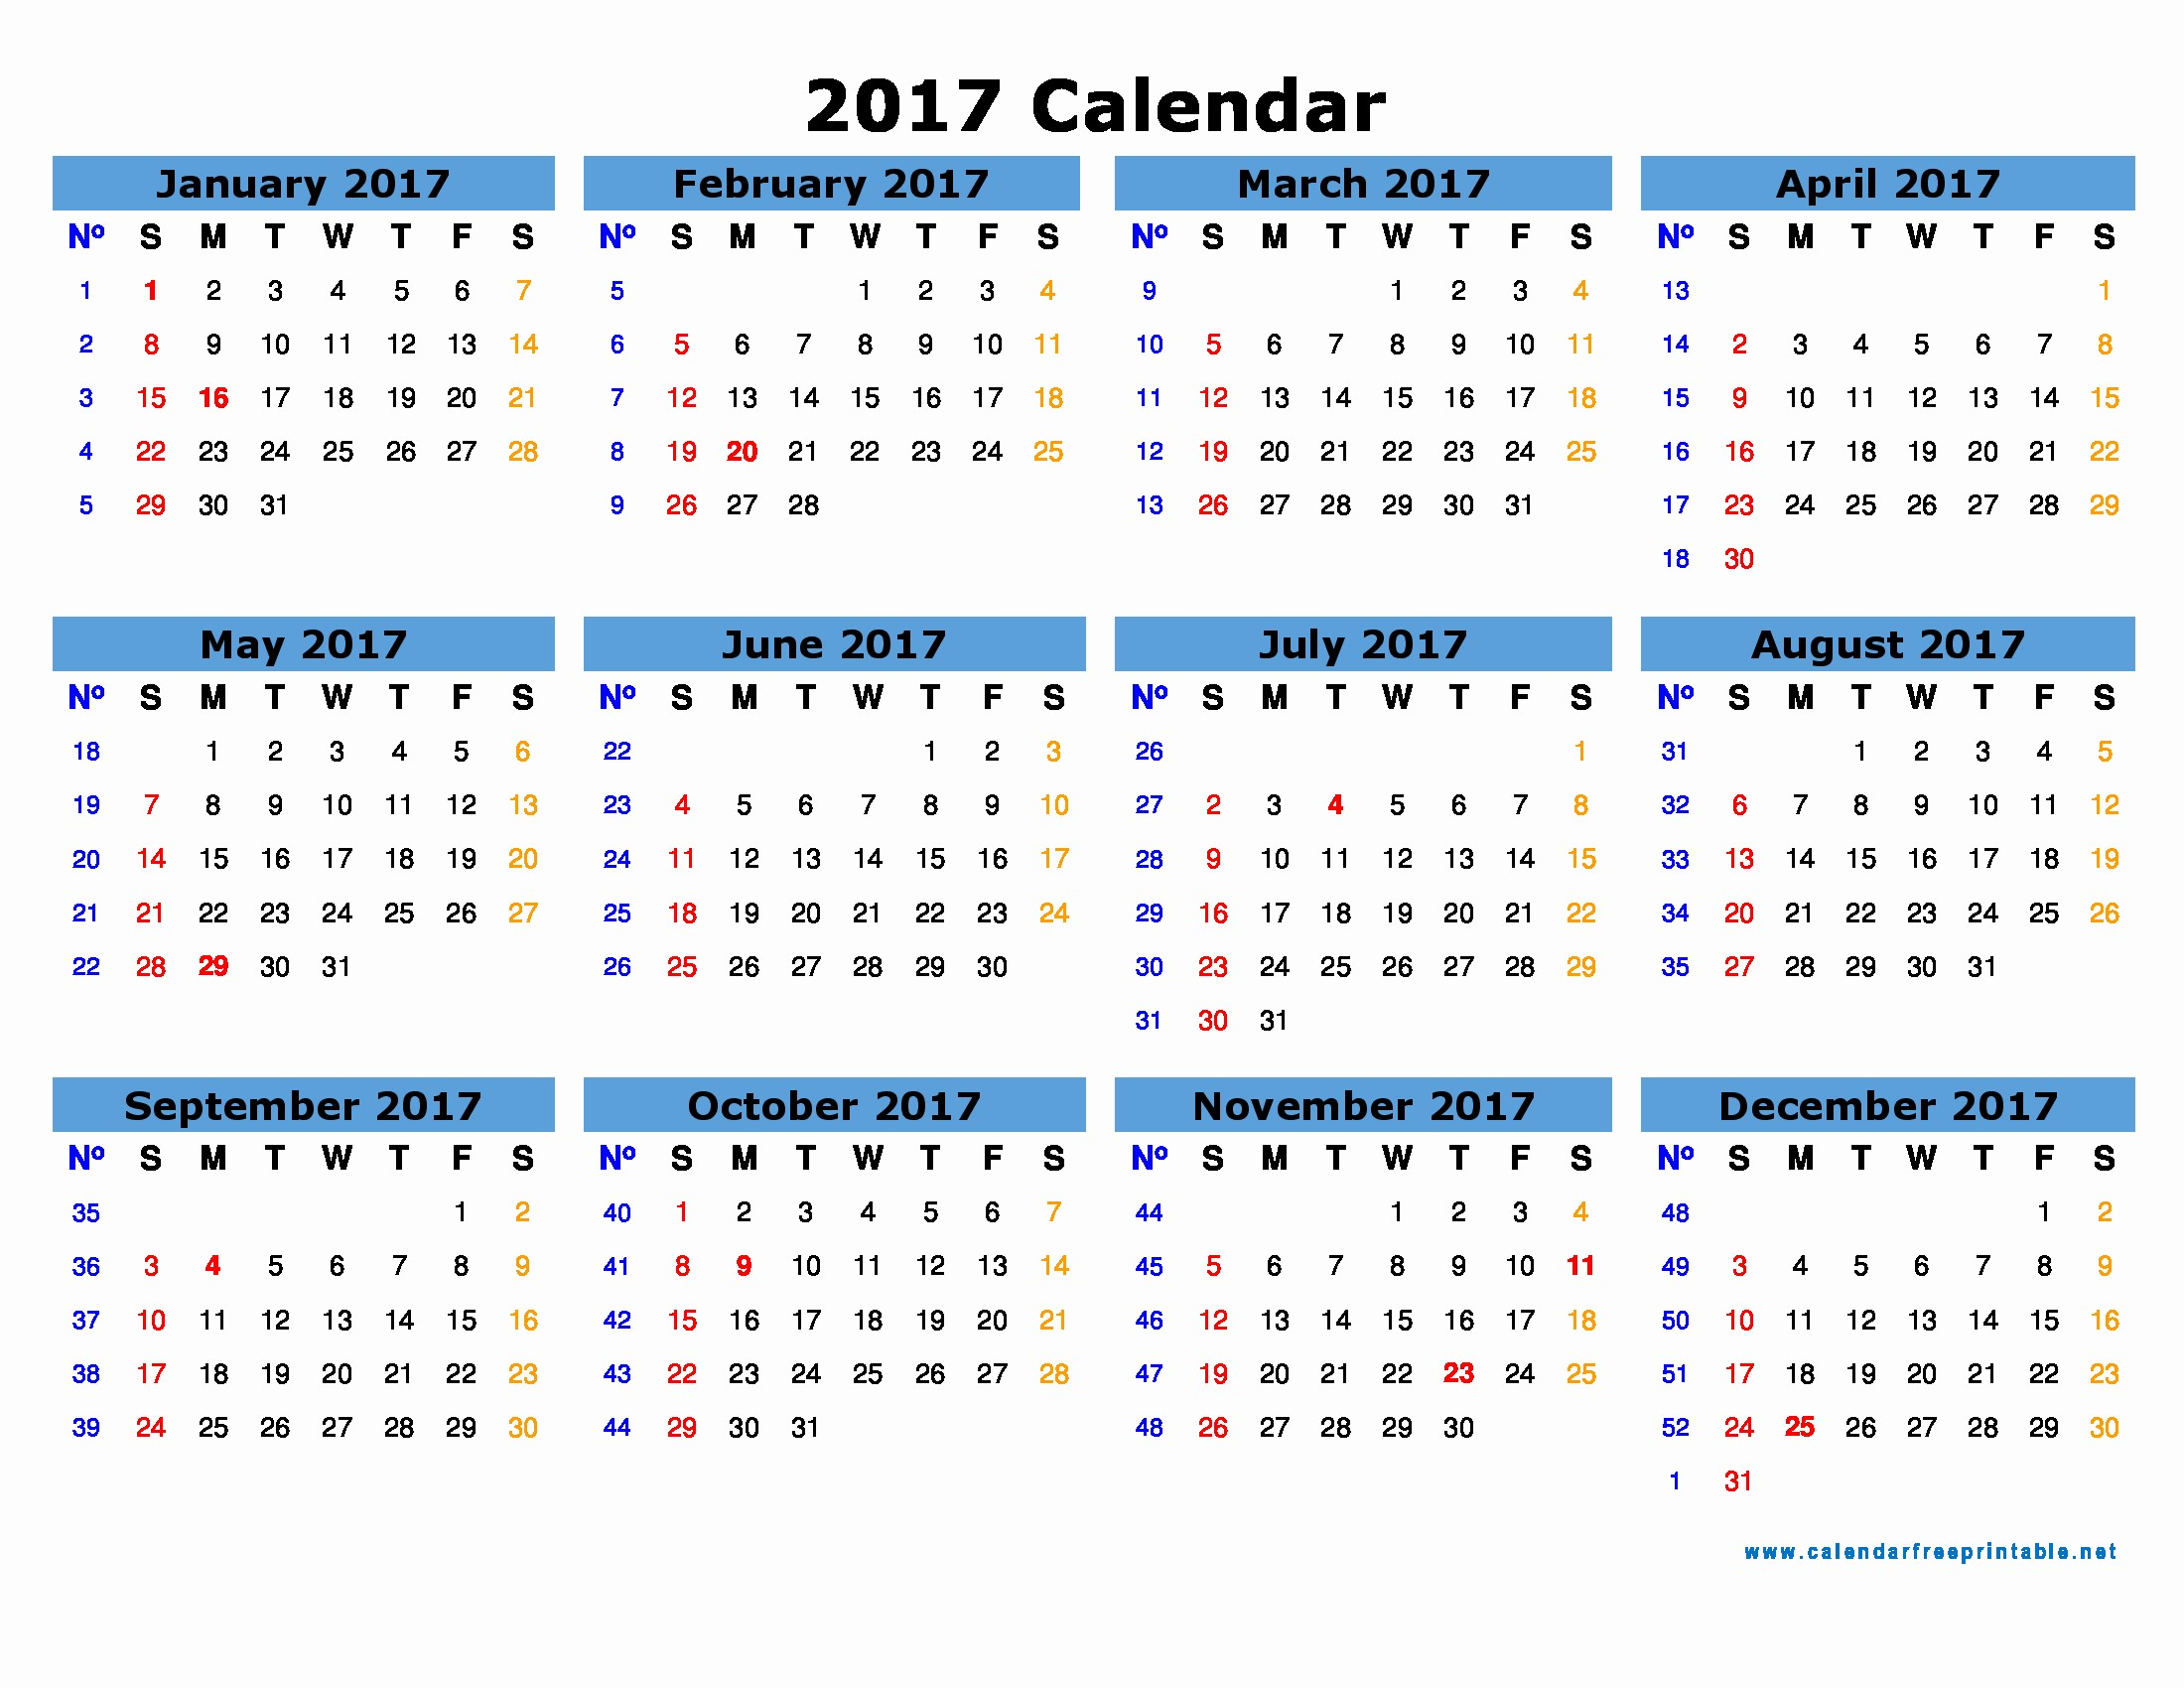 Free Printable Weekly Calendars 2017 Inspirational Free 2017 Calendar with Holidays